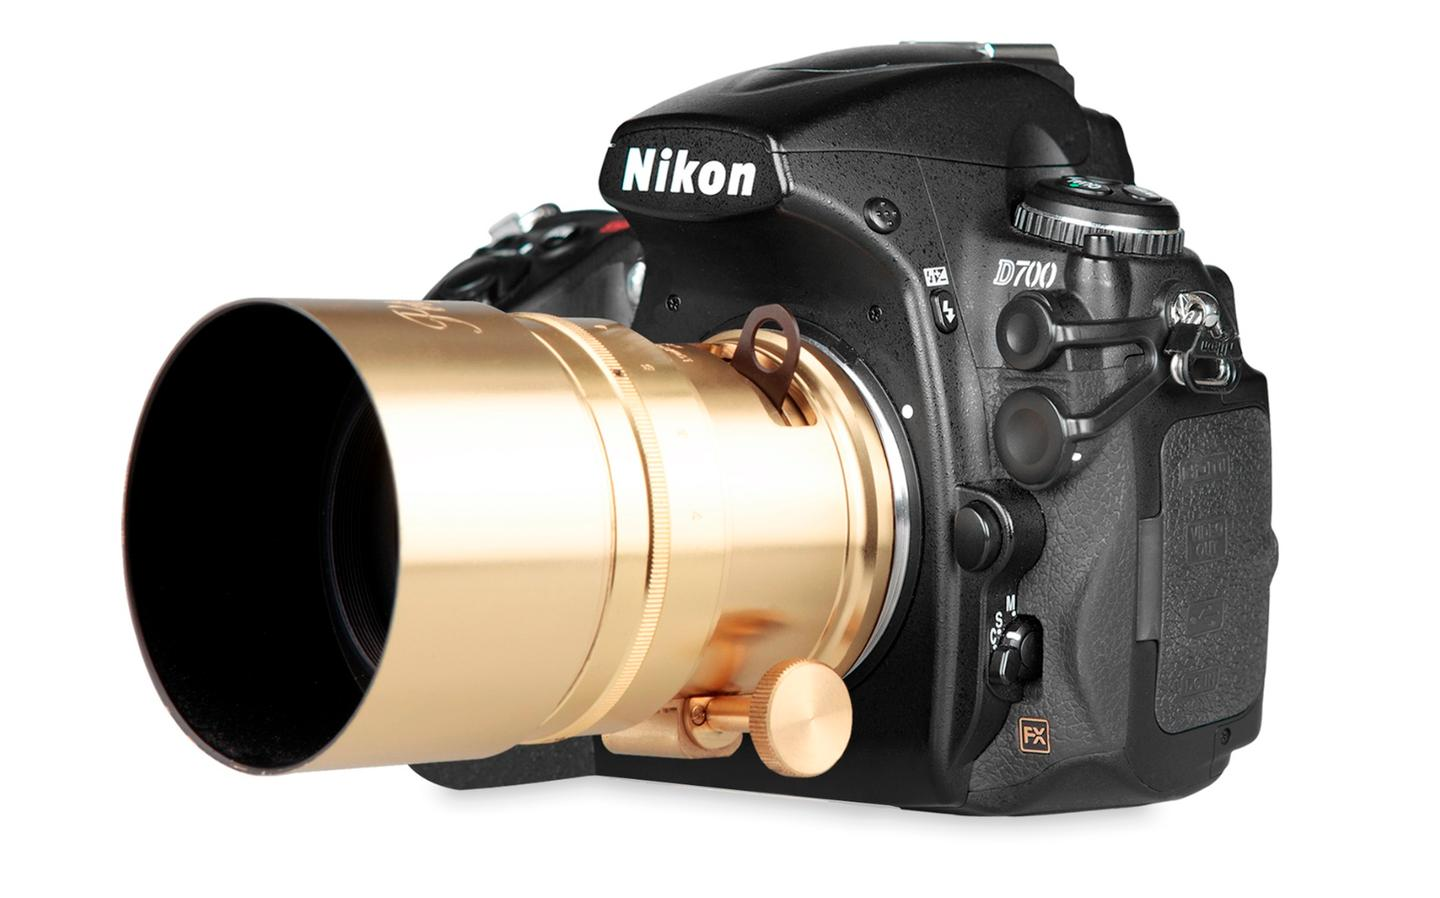 The Lomography New Petzval 58 Bokeh Control Art Lens will be available with a Nikon F mount